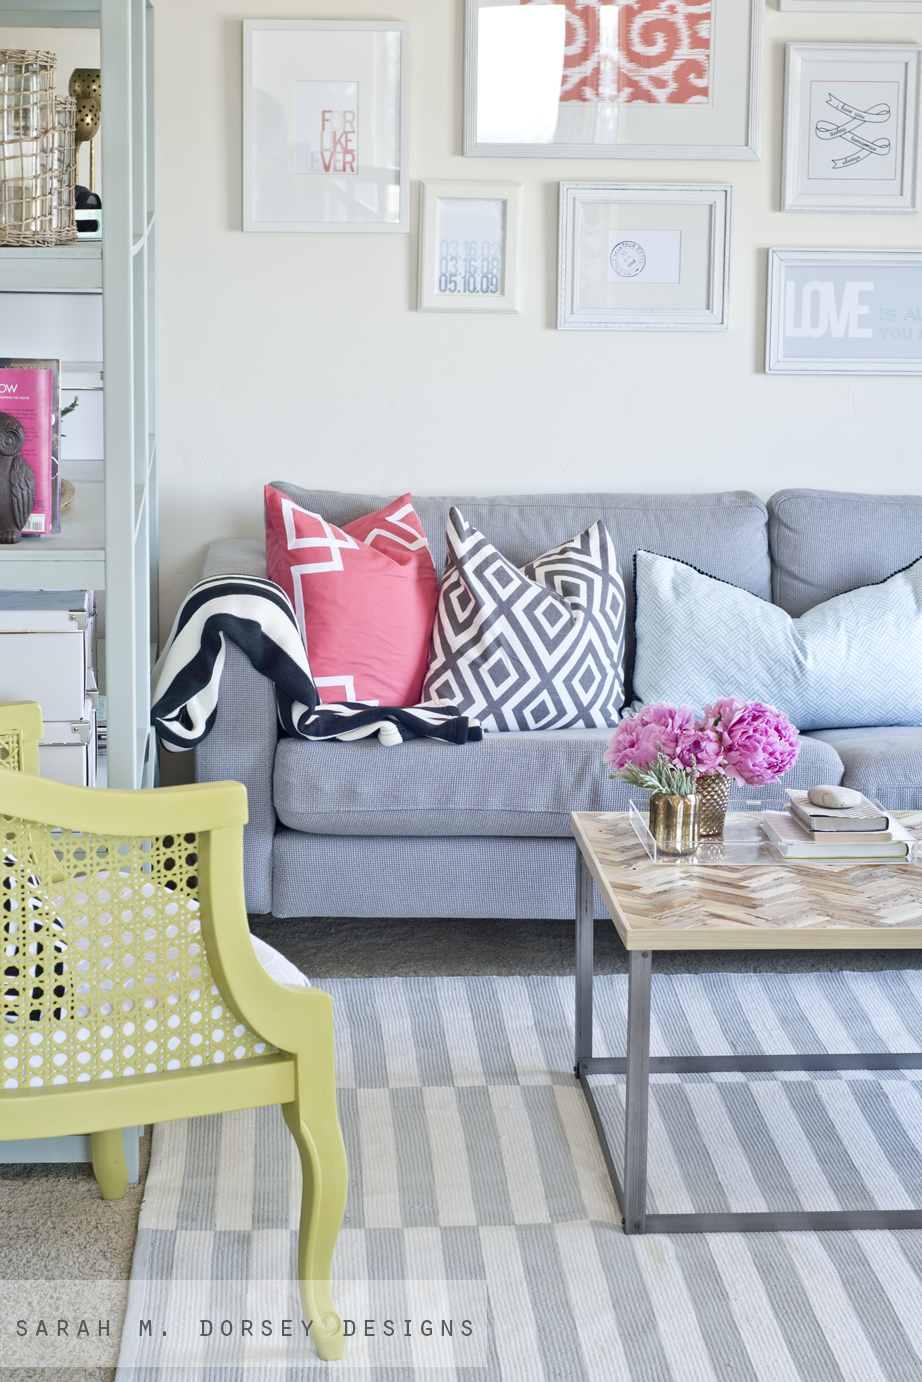 Sarah M Dorsey Designs DIY Striped Painted Rug In About